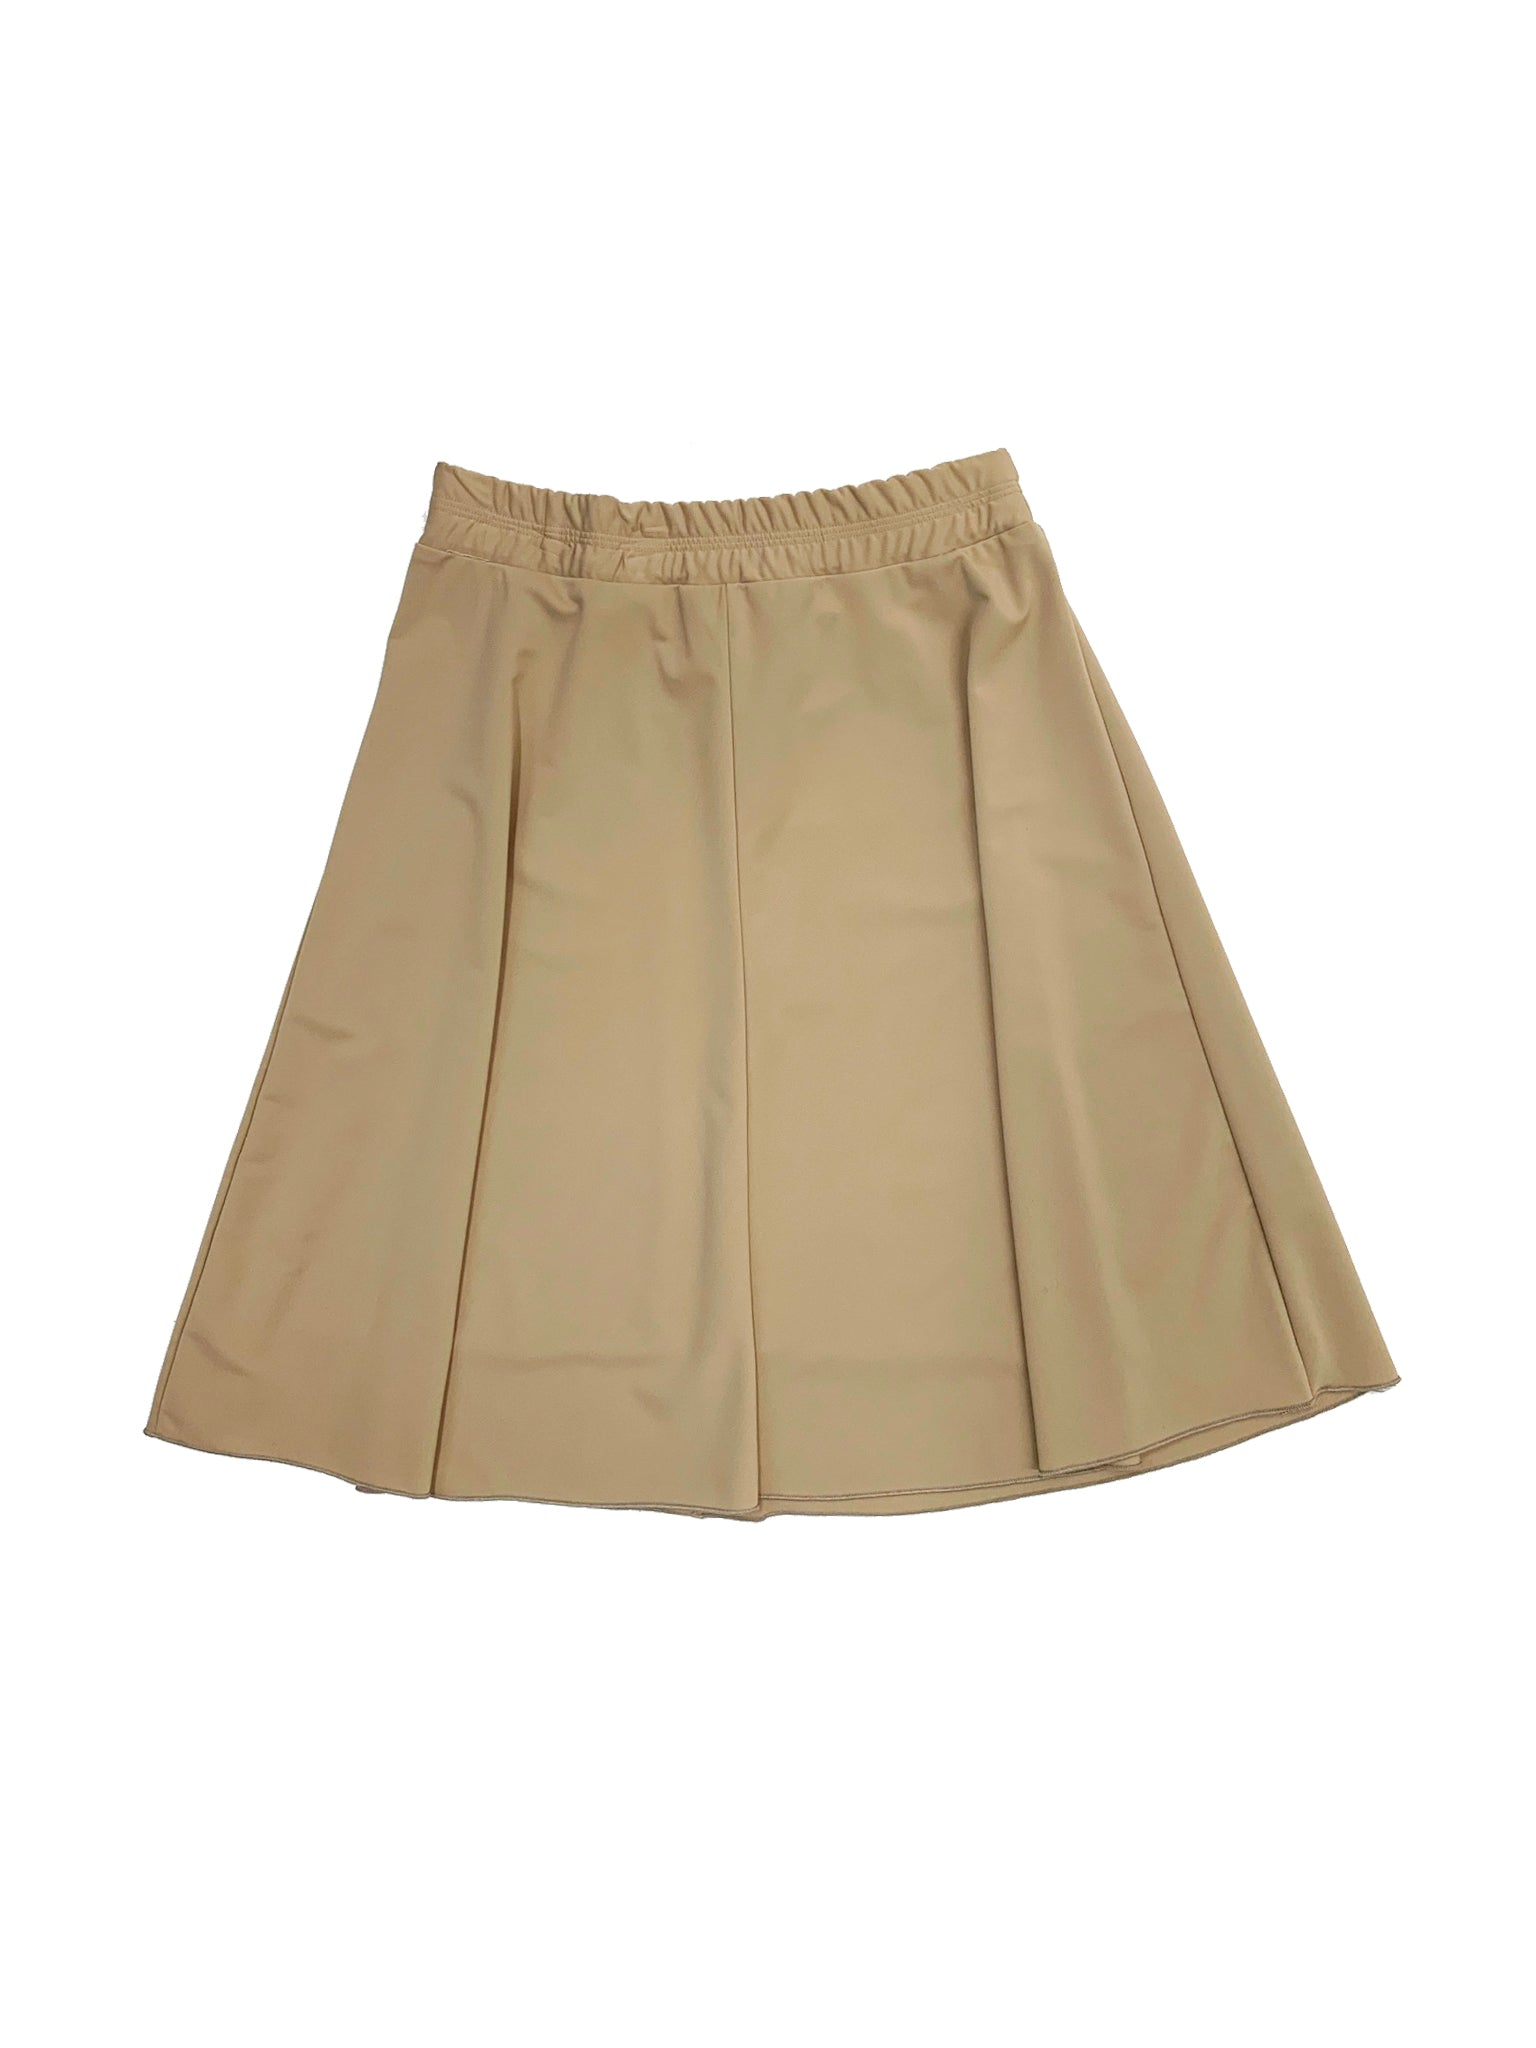 Ladies Tan Flairy Skirt